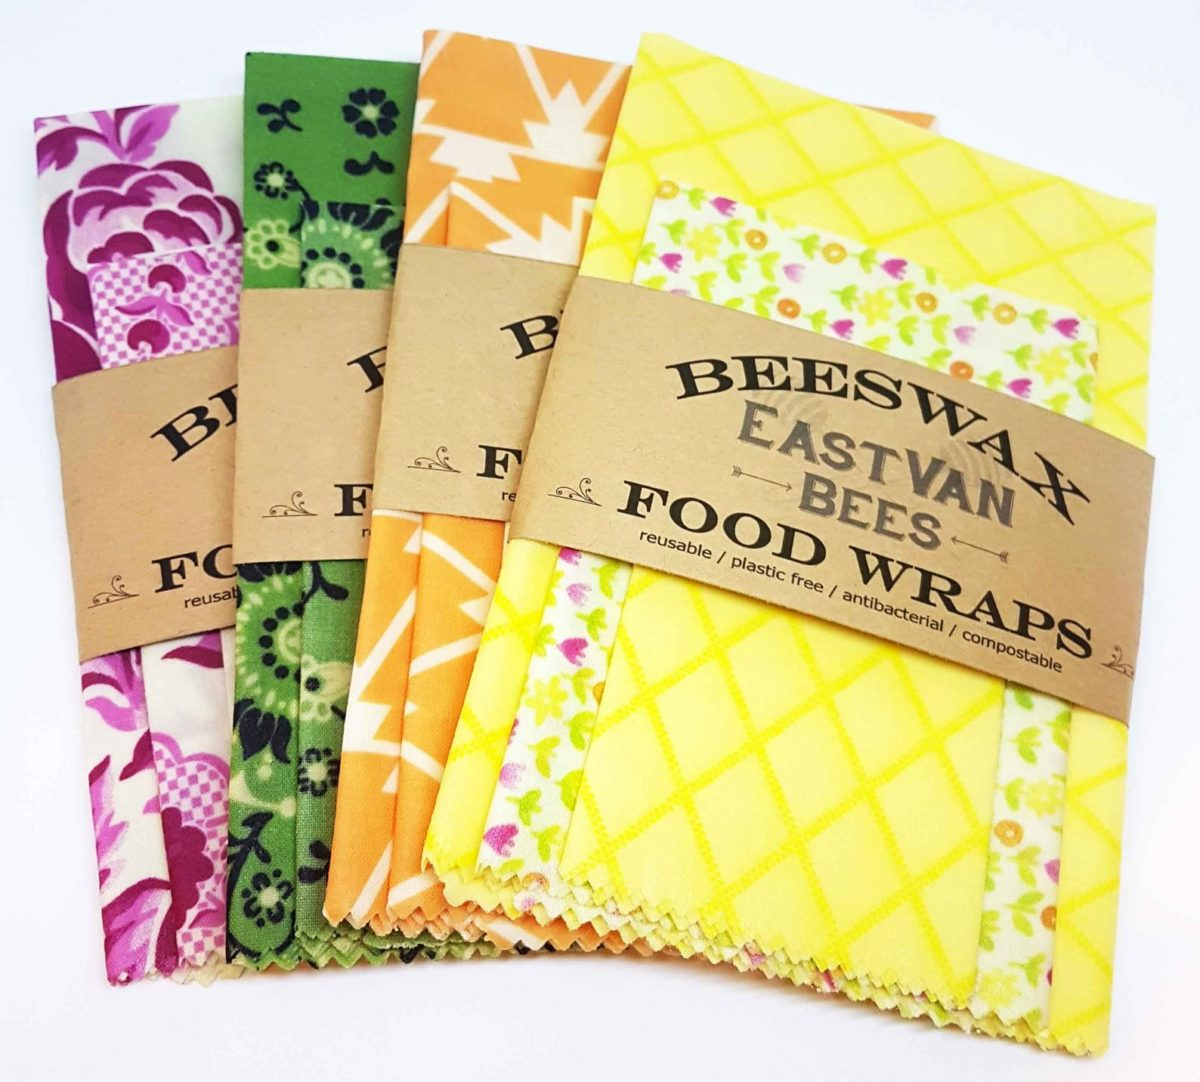 Bees Wax food wraps for zero waste entertaining